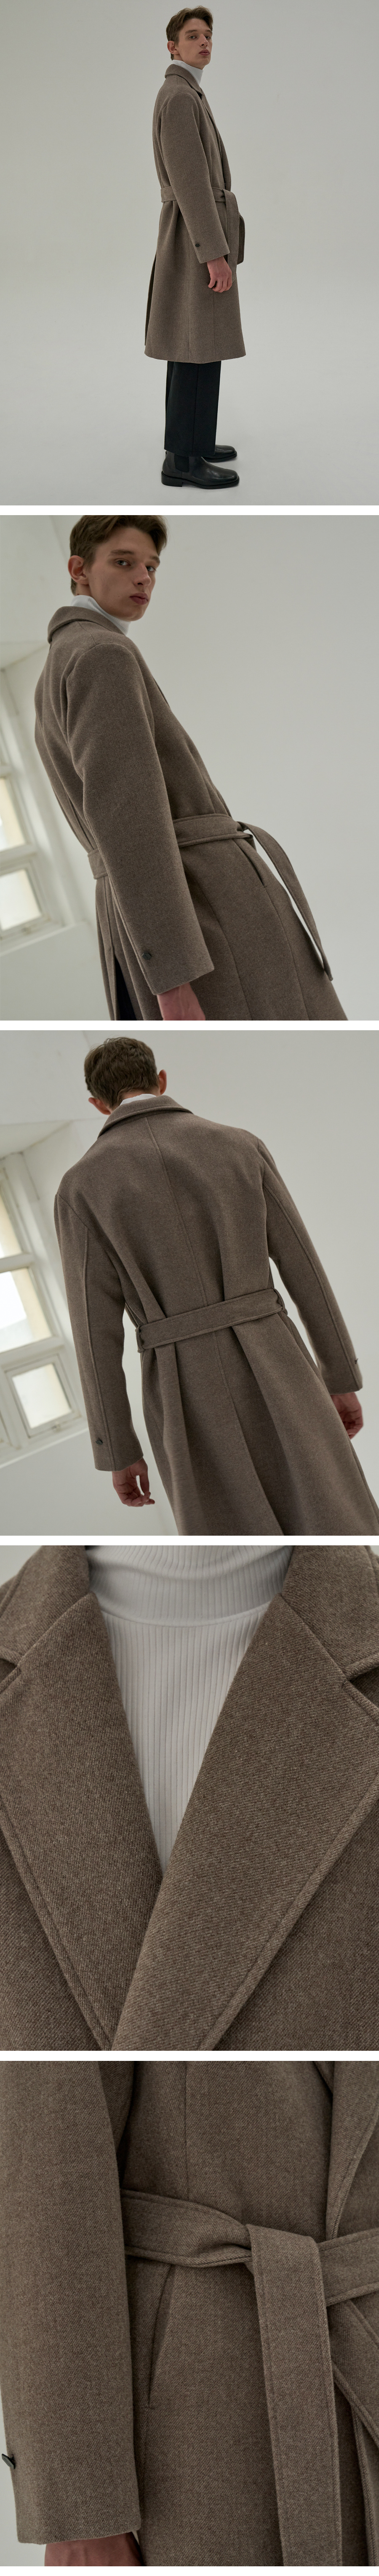 트립르센스(TRIP LE SENS) LE ROBE COAT_BROWN